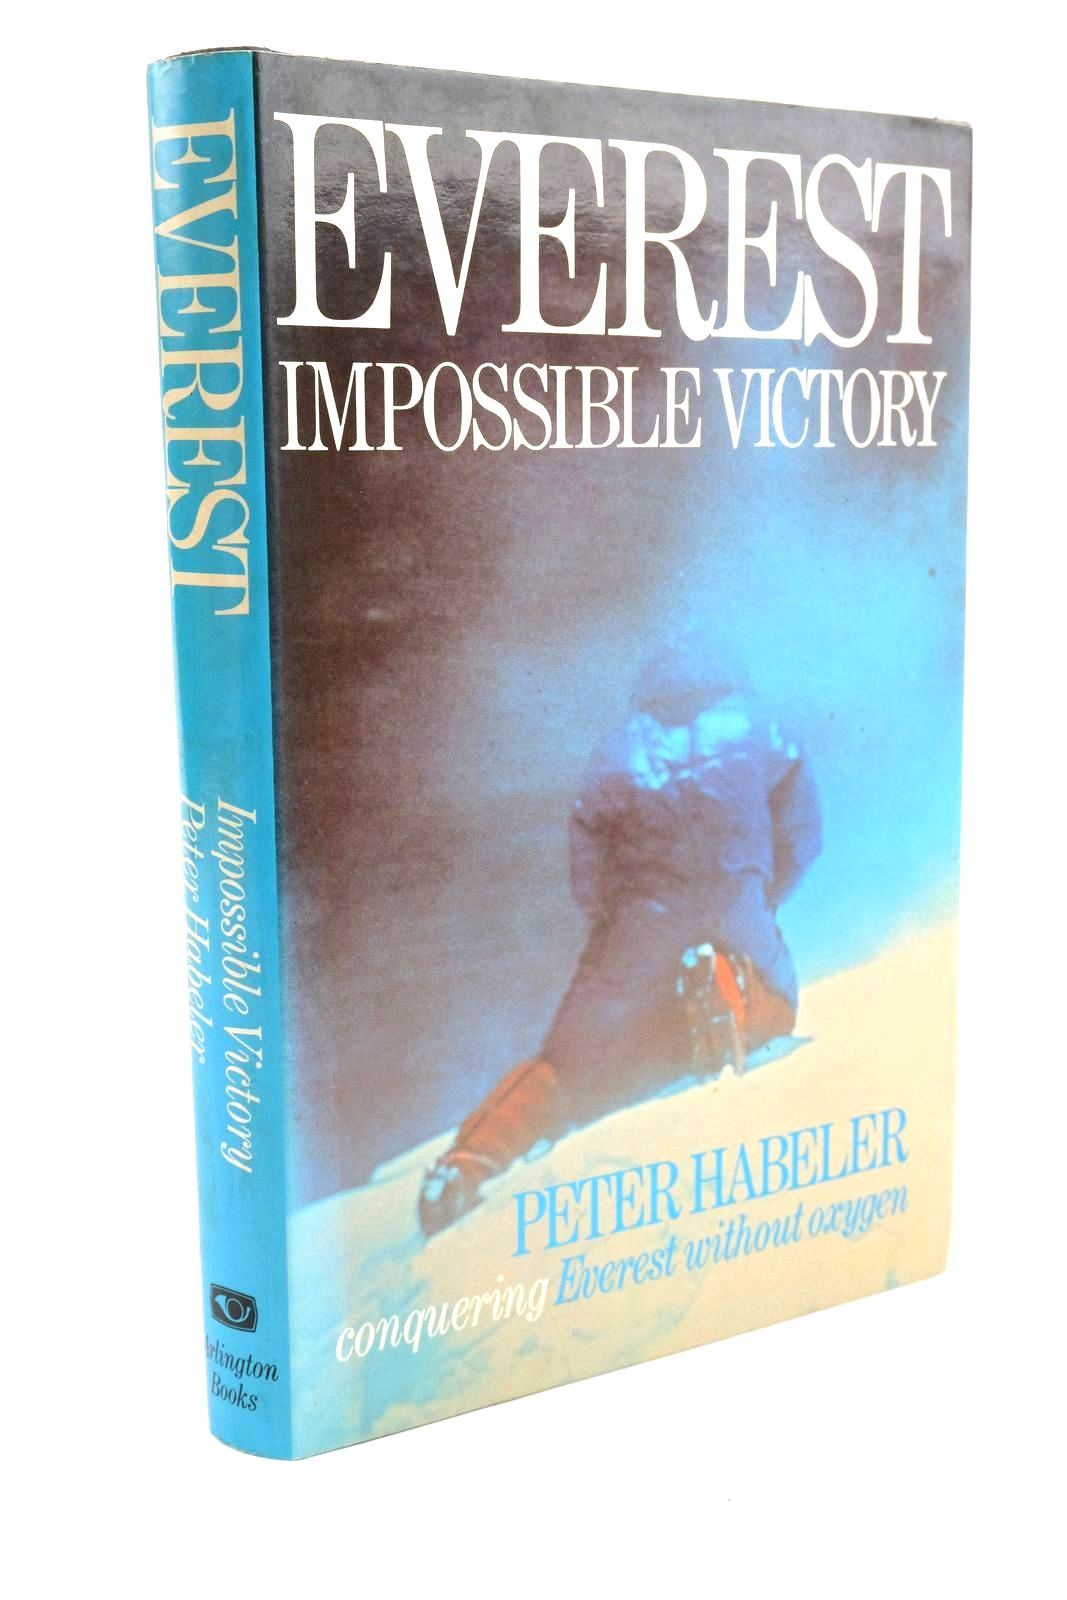 Photo of EVEREST IMPOSSIBLE VICTORY- Stock Number: 1321479